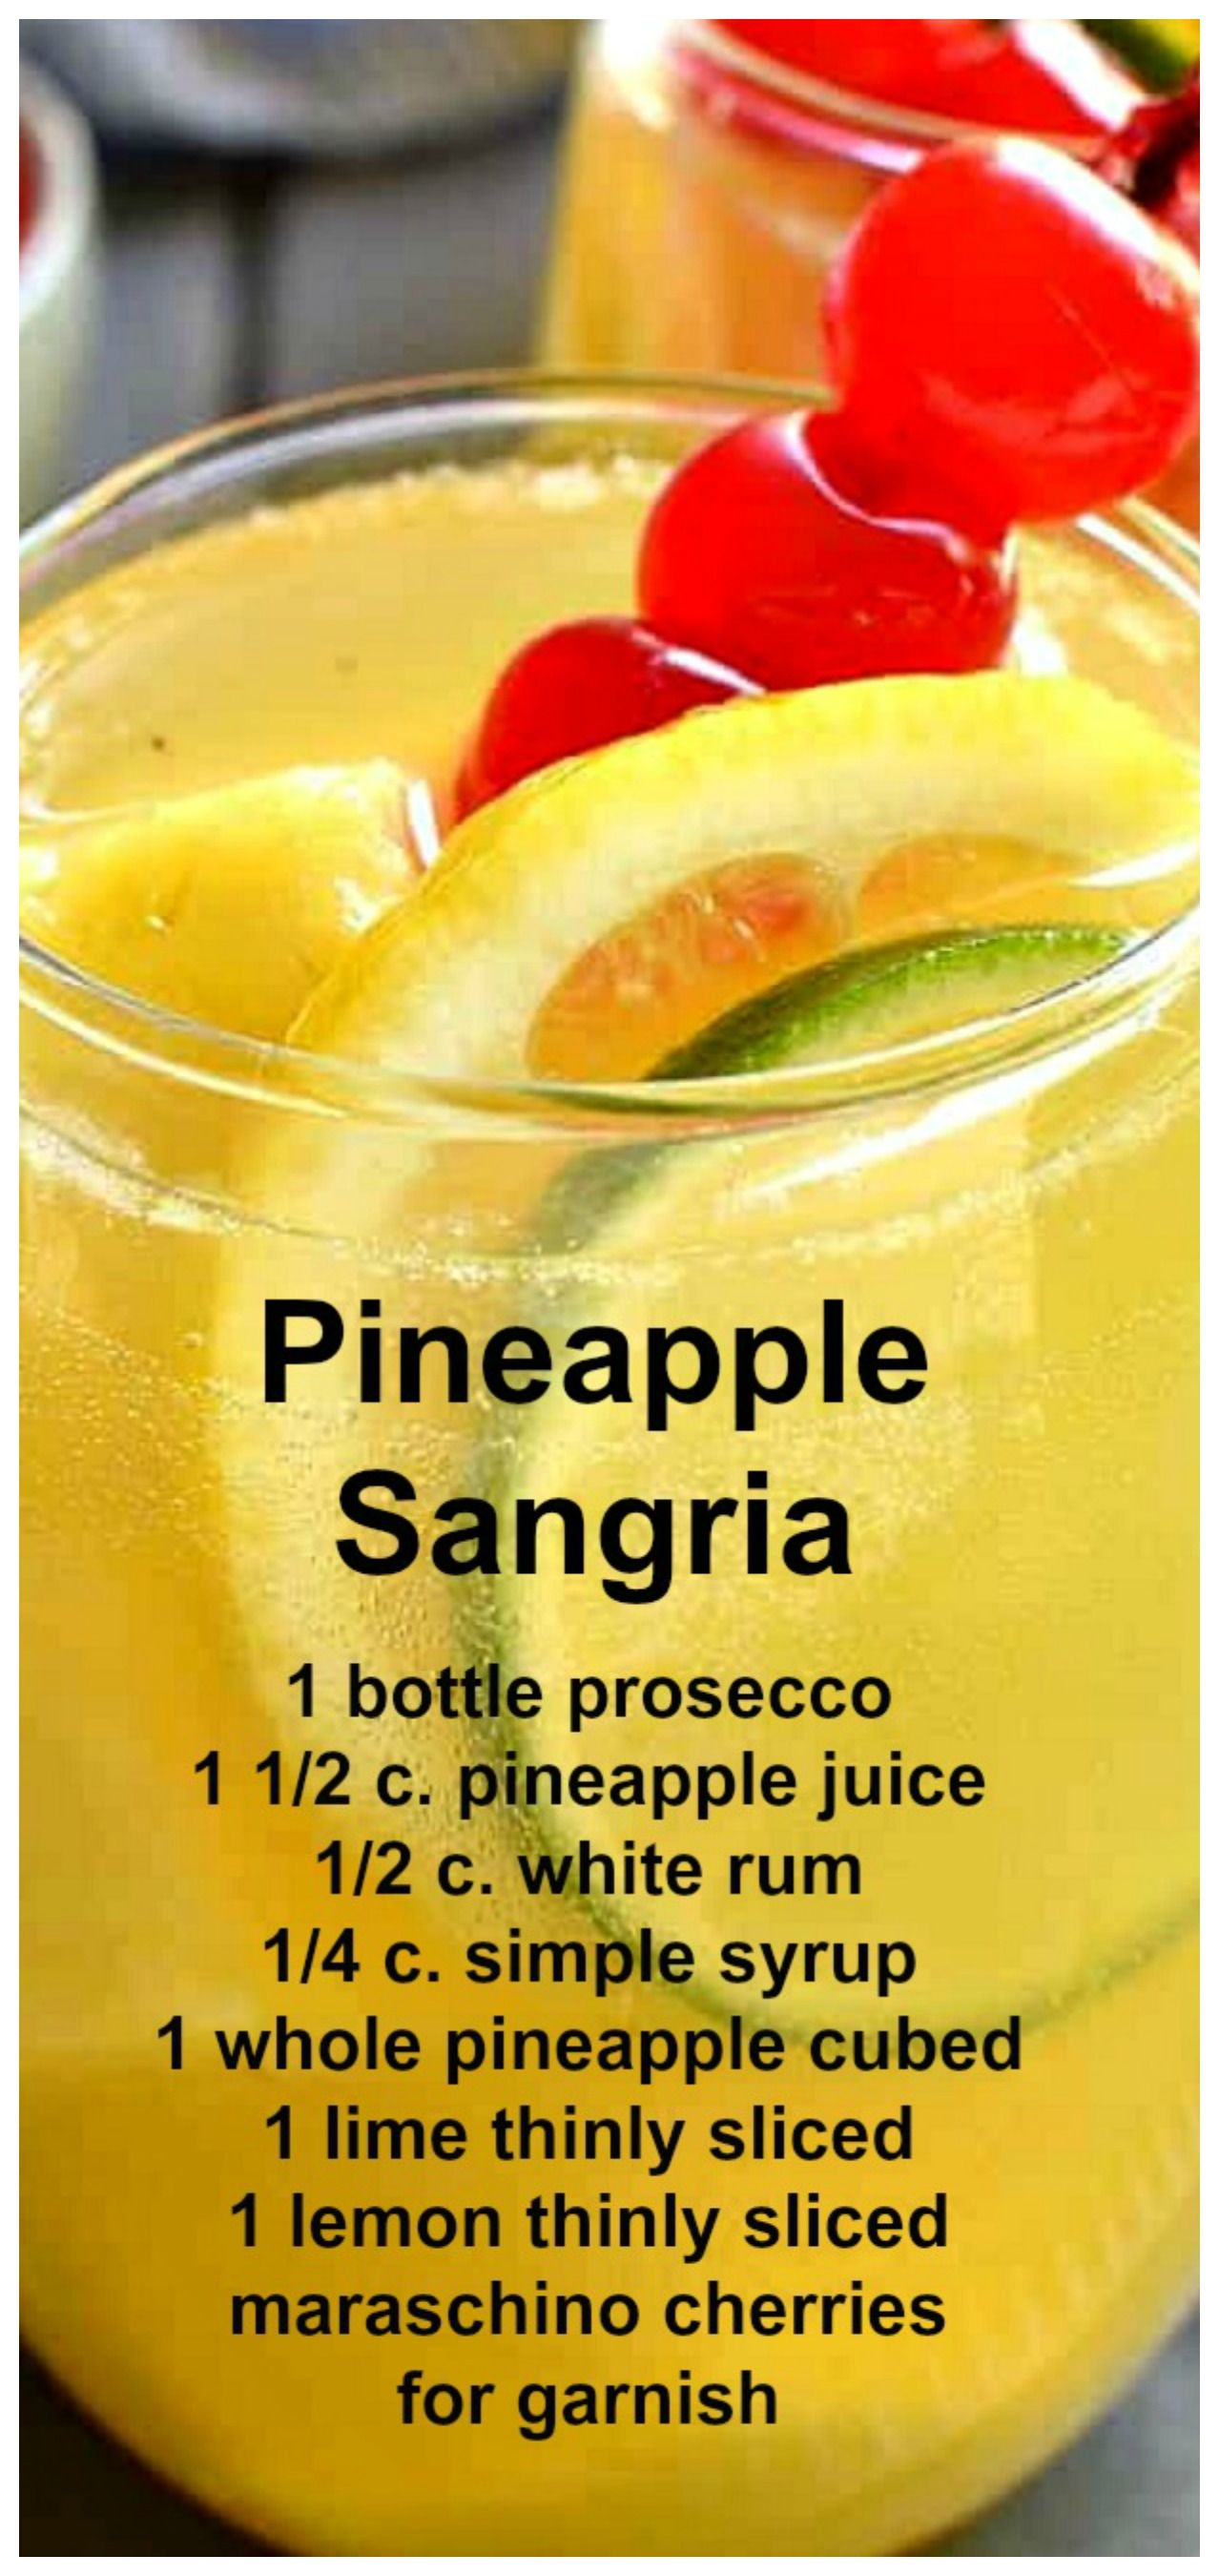 Pineapple sangria made with prosecco pineapple juice and white